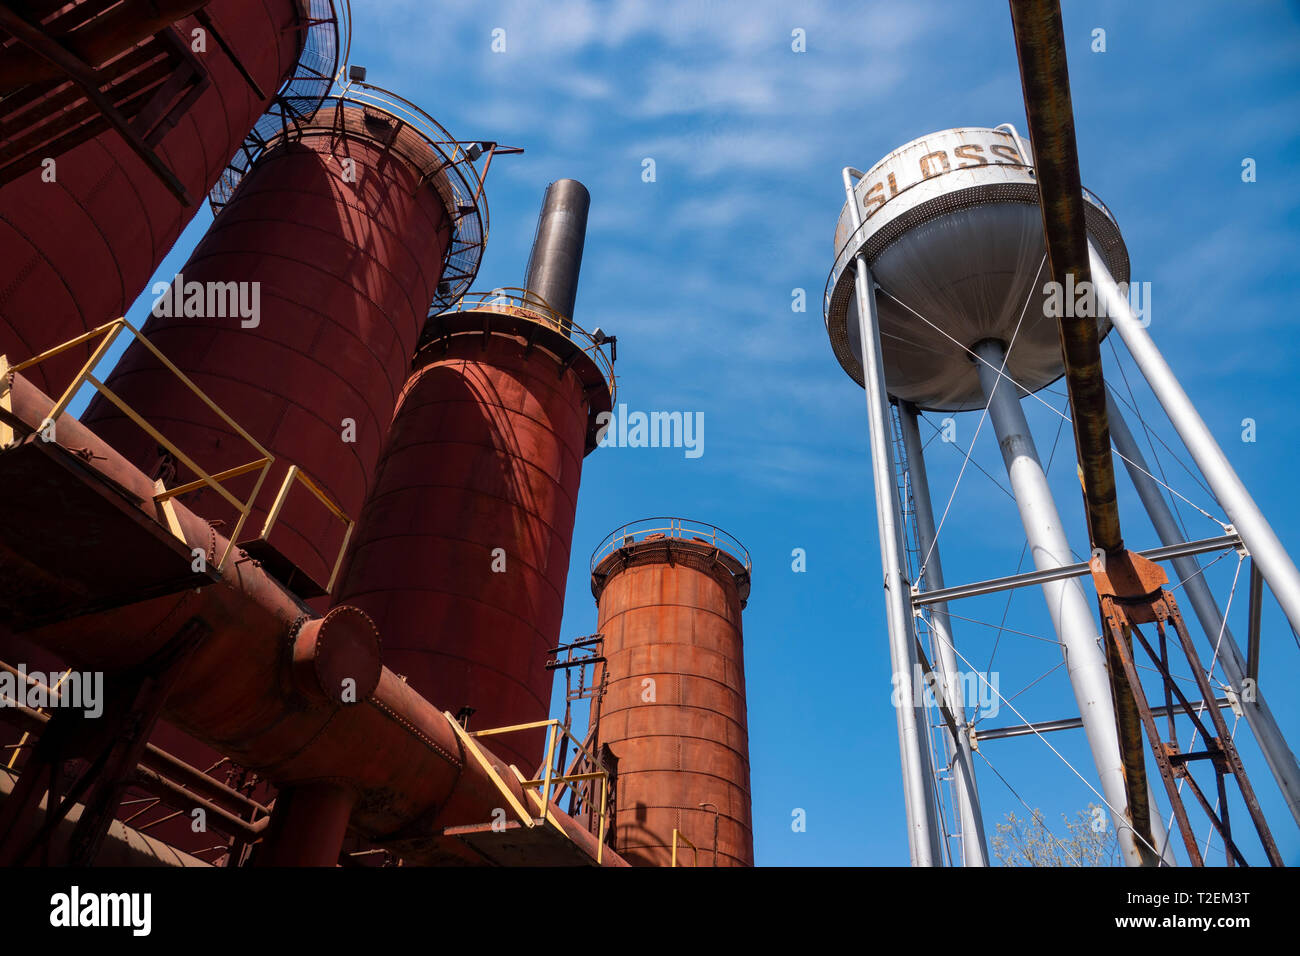 usa-alabama-birmingham-the-sloss-furnaces-now-a-national-historic-landmark-once-a-pig-iron-plant-T2EM3T.jpg